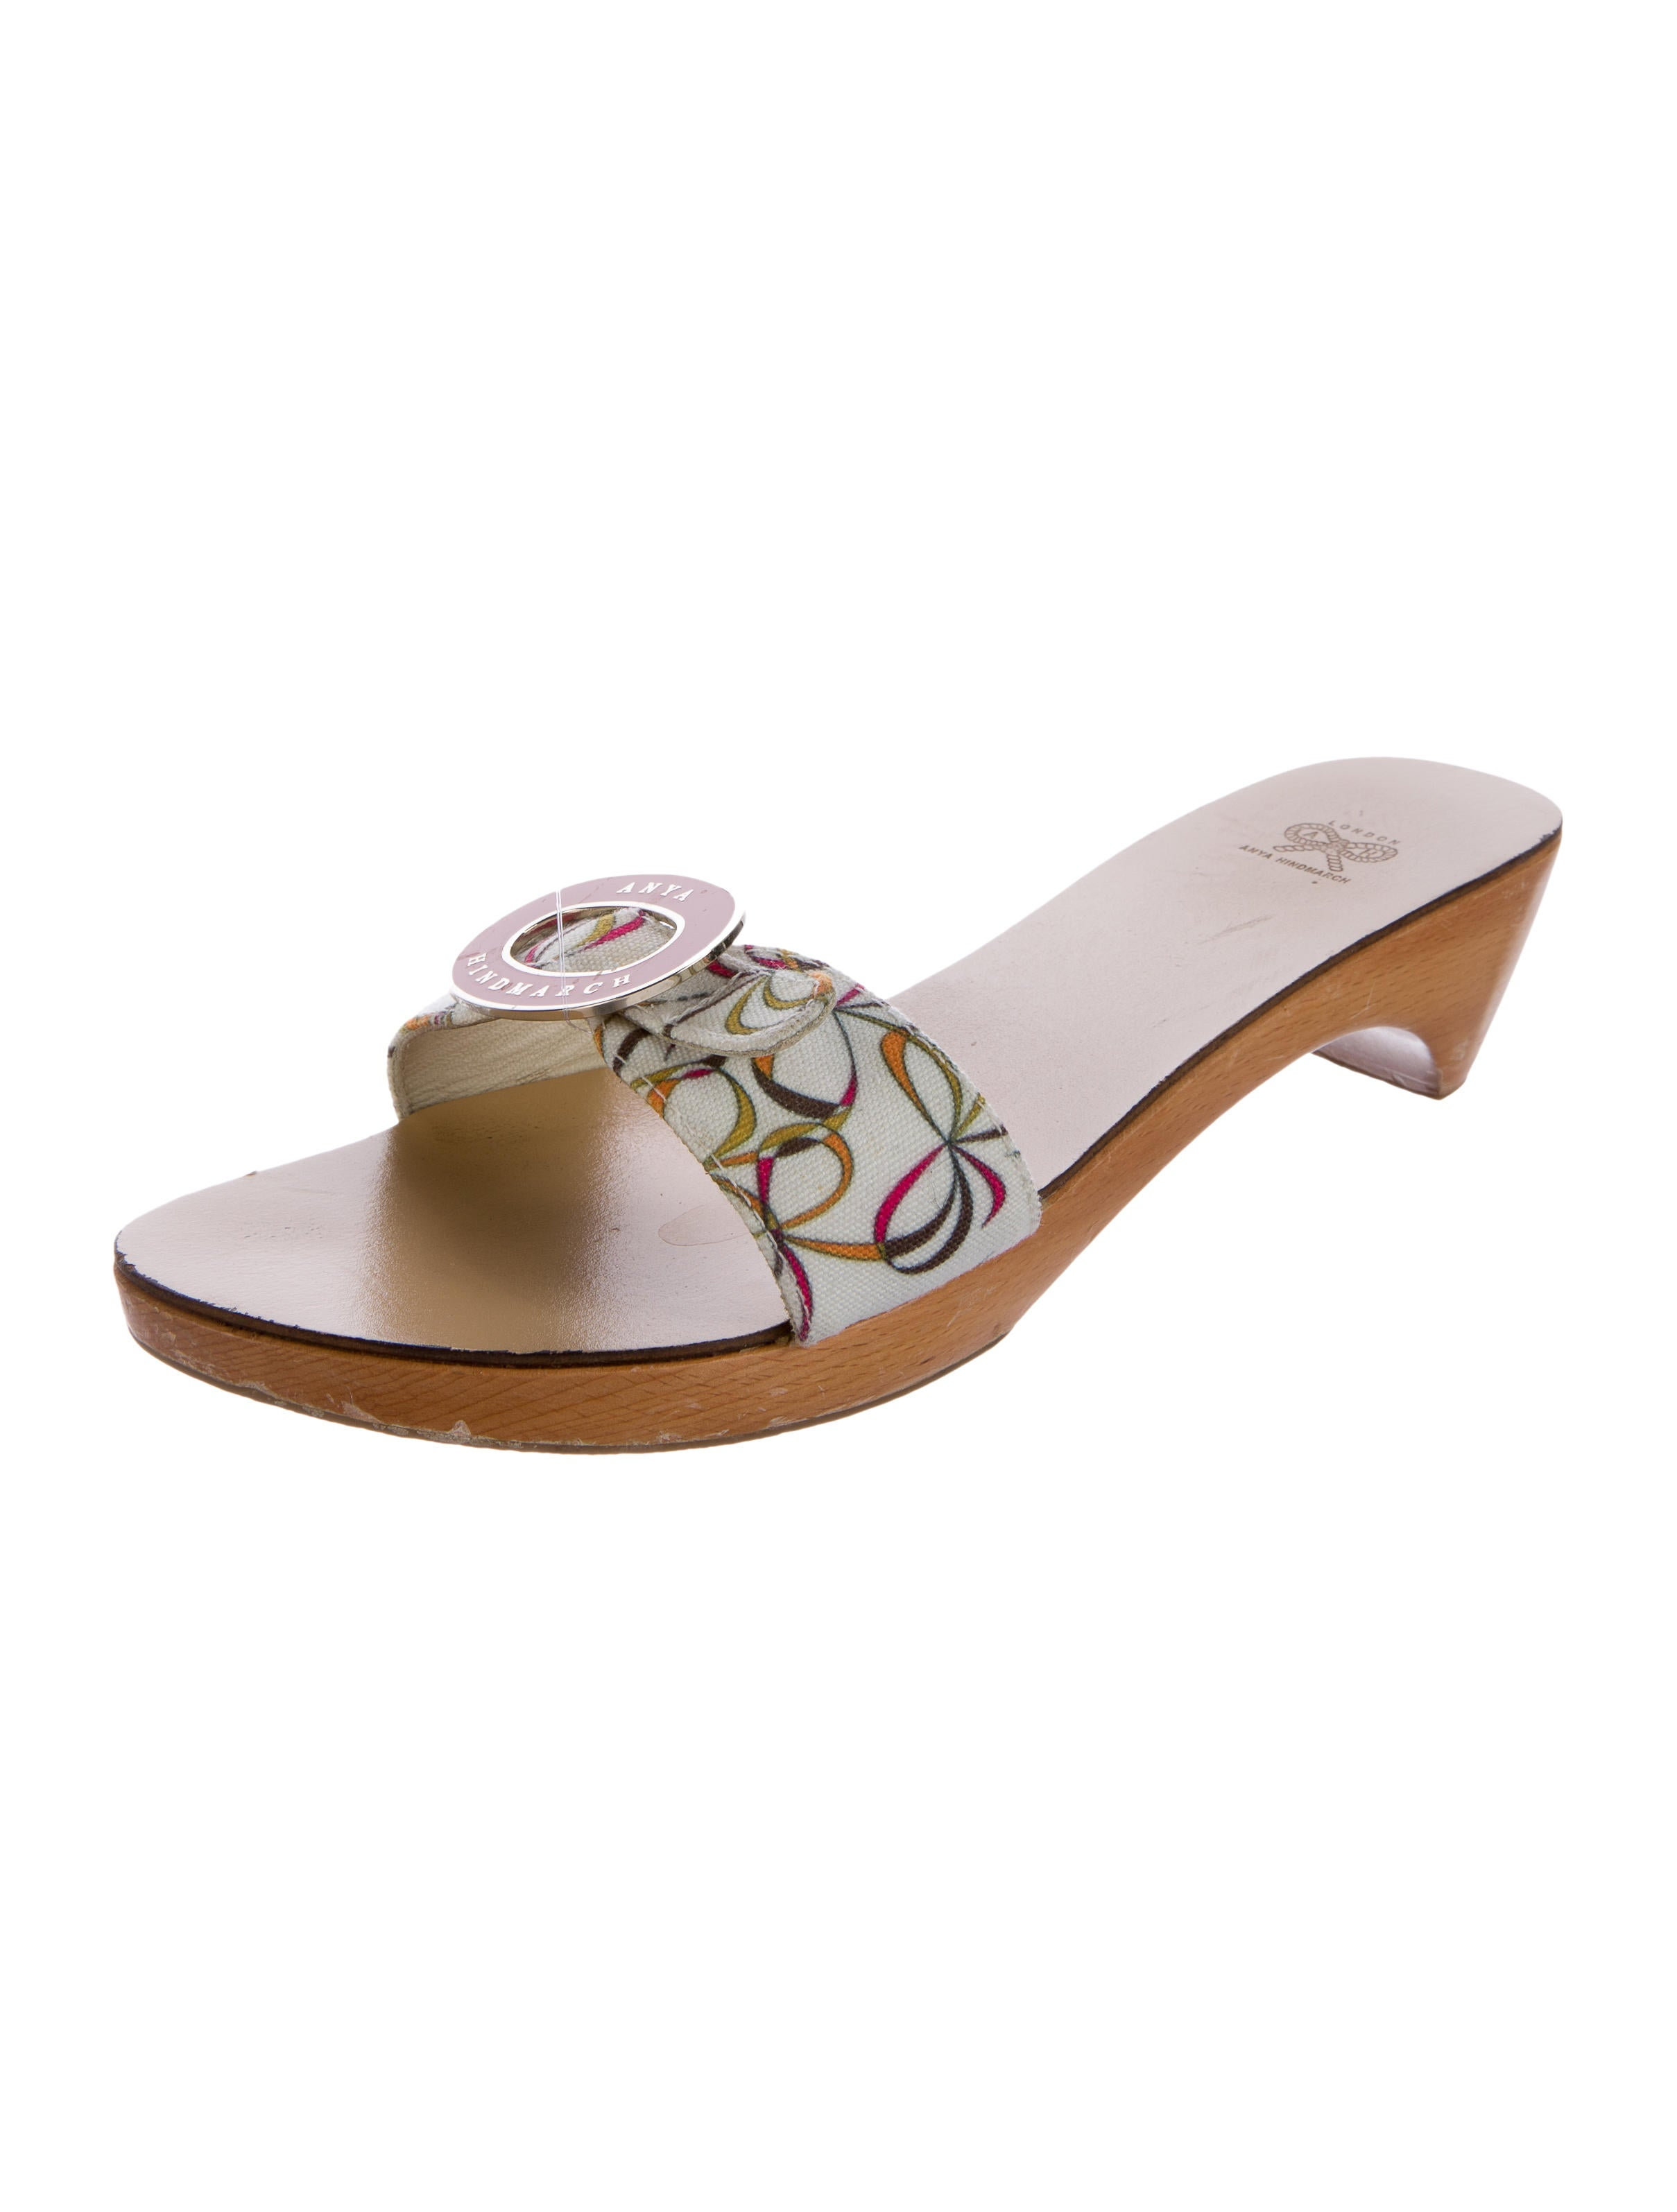 anya hindmarch canvas slide sandals shoes wah22282